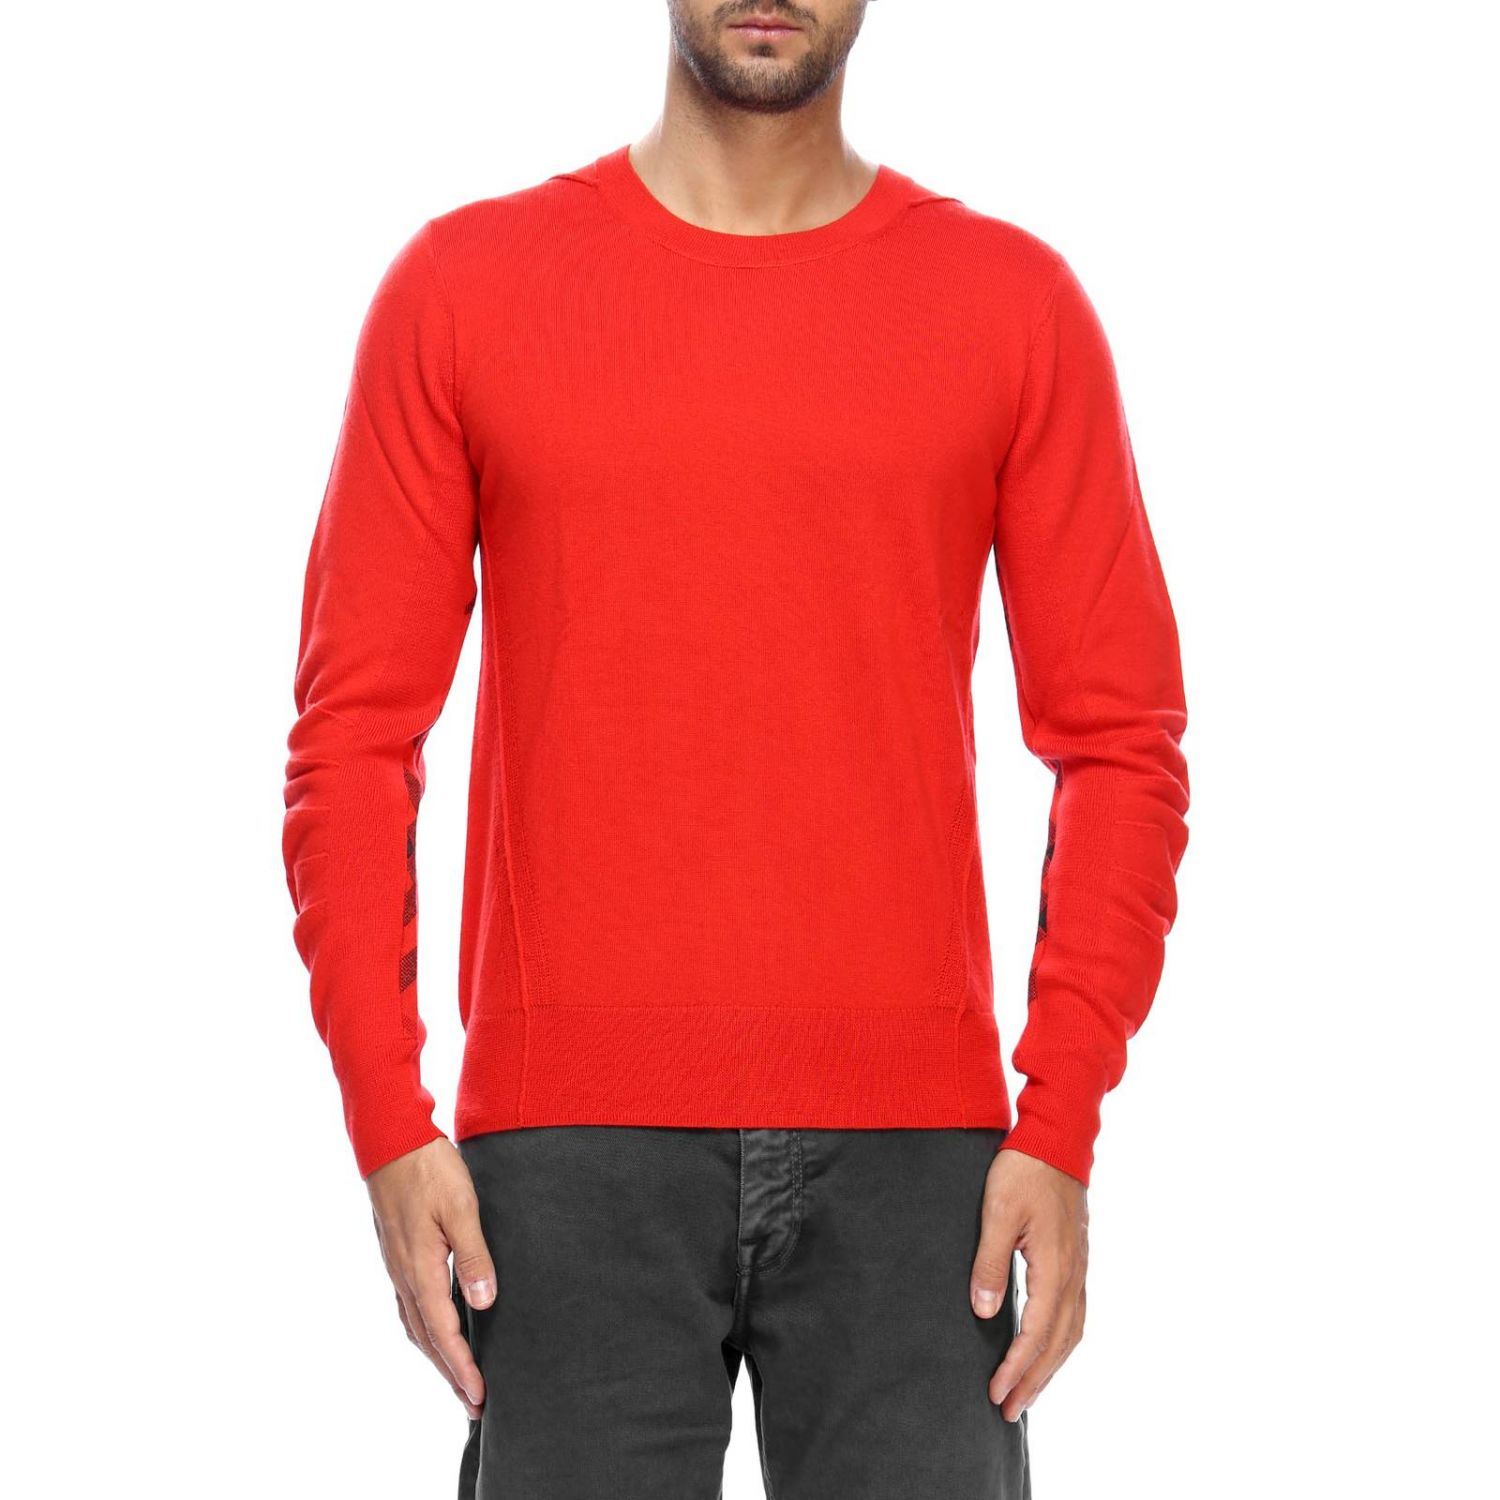 Sweater men Burberry red 1